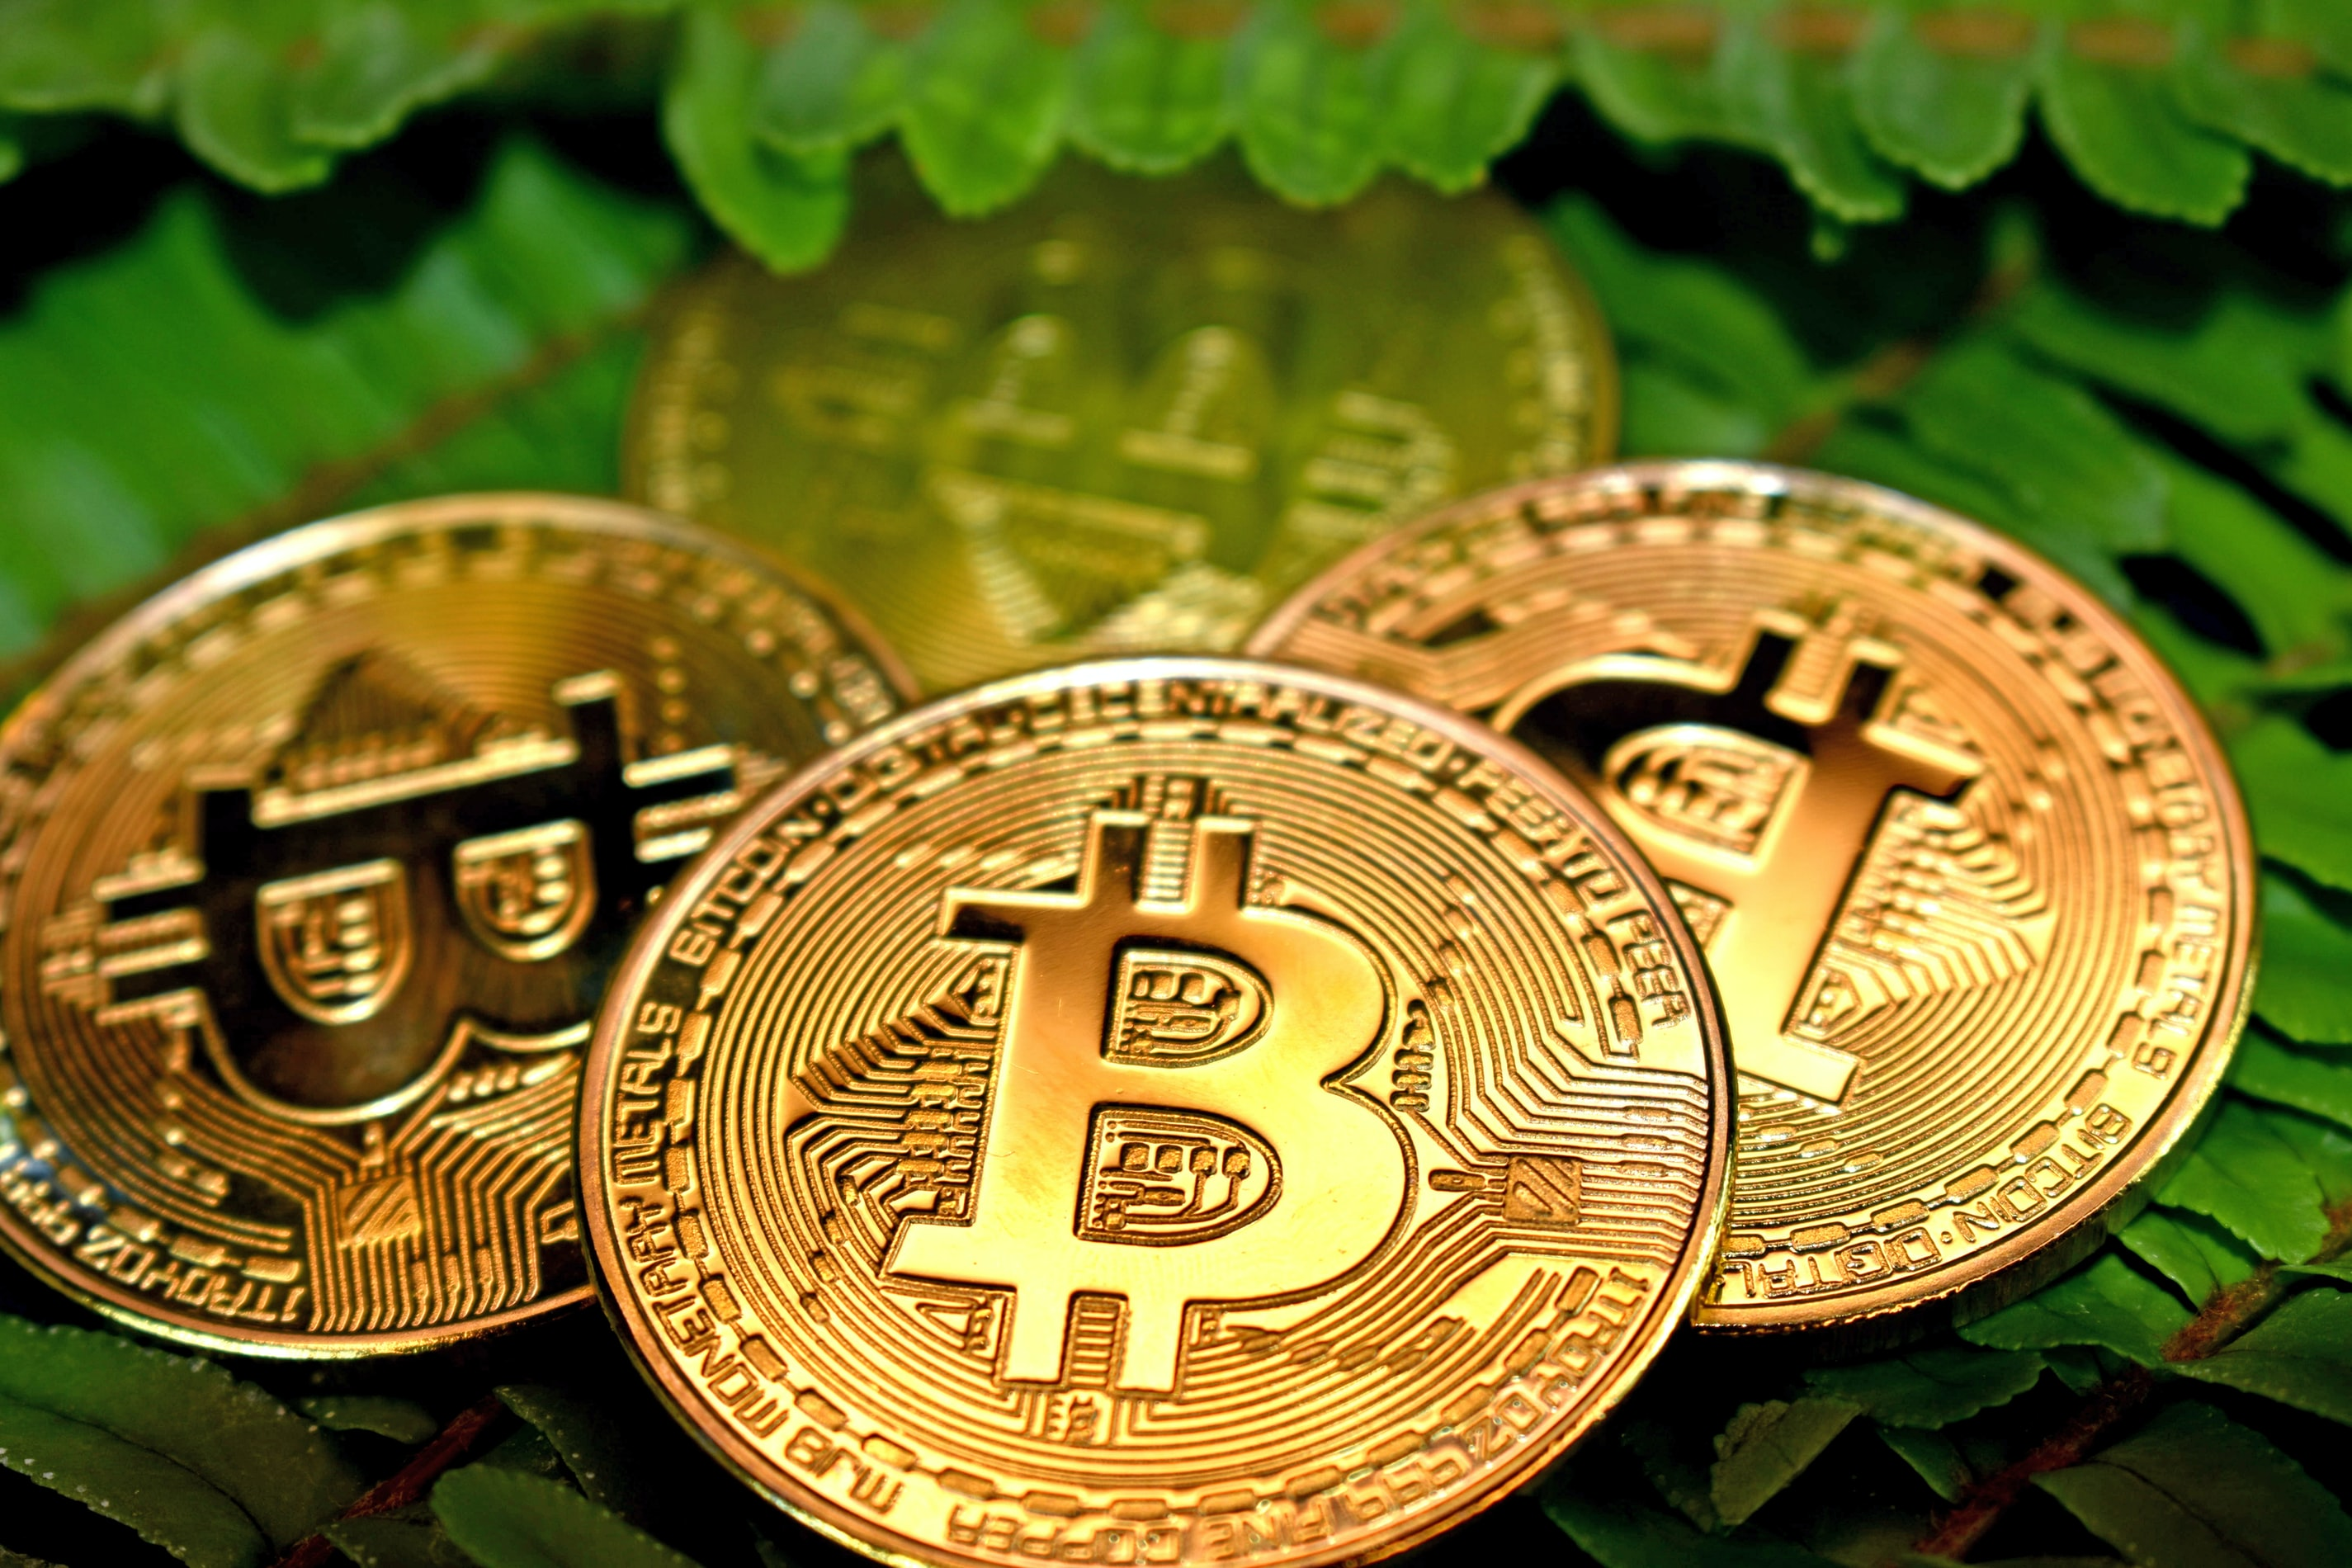 A resourceful step-by-step guide that can let anyone invest in bitcoins without any confusion